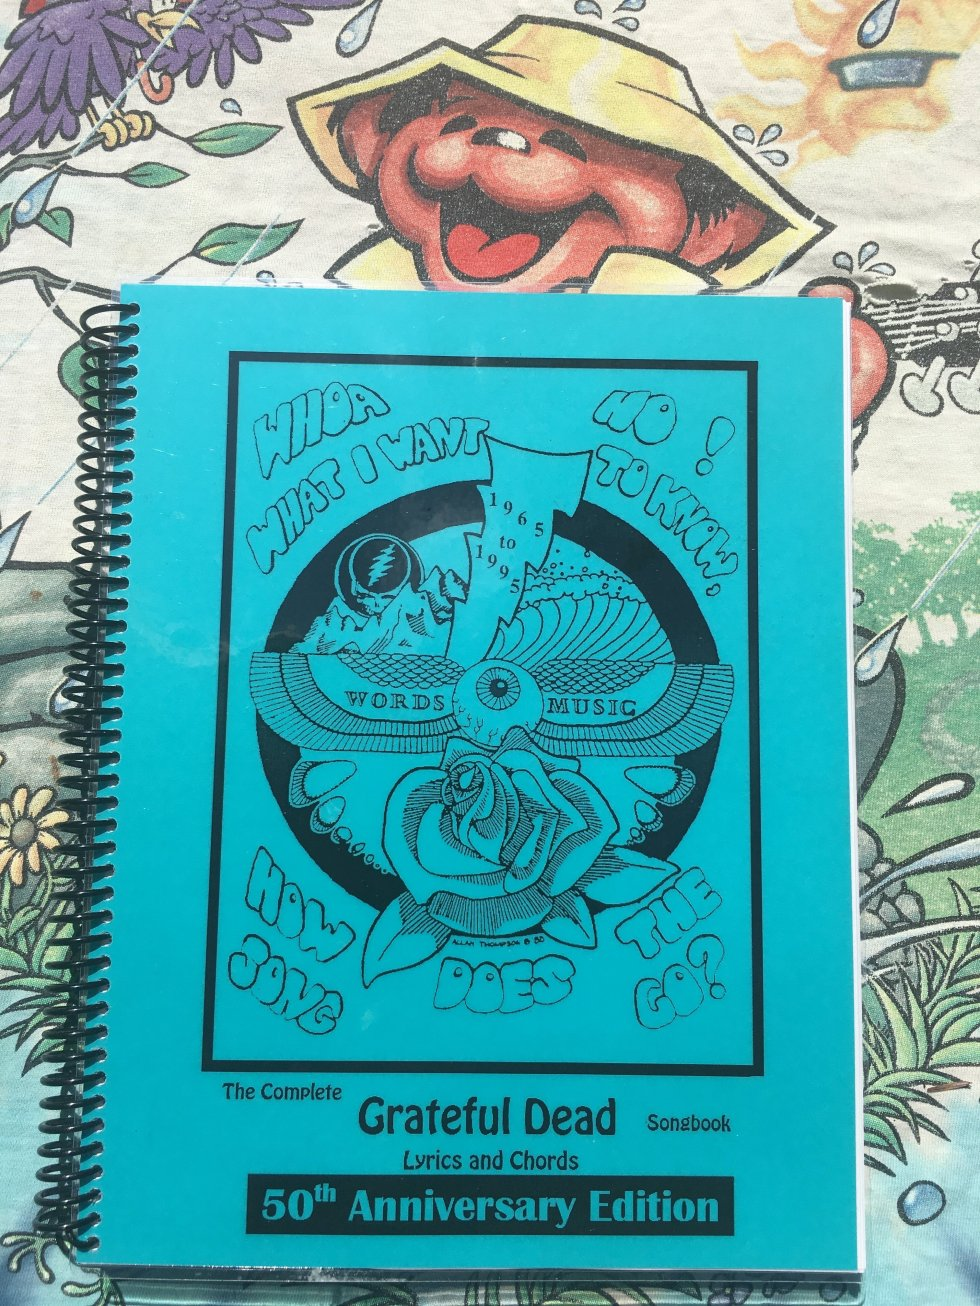 The Complete Grateful Dead Songbook